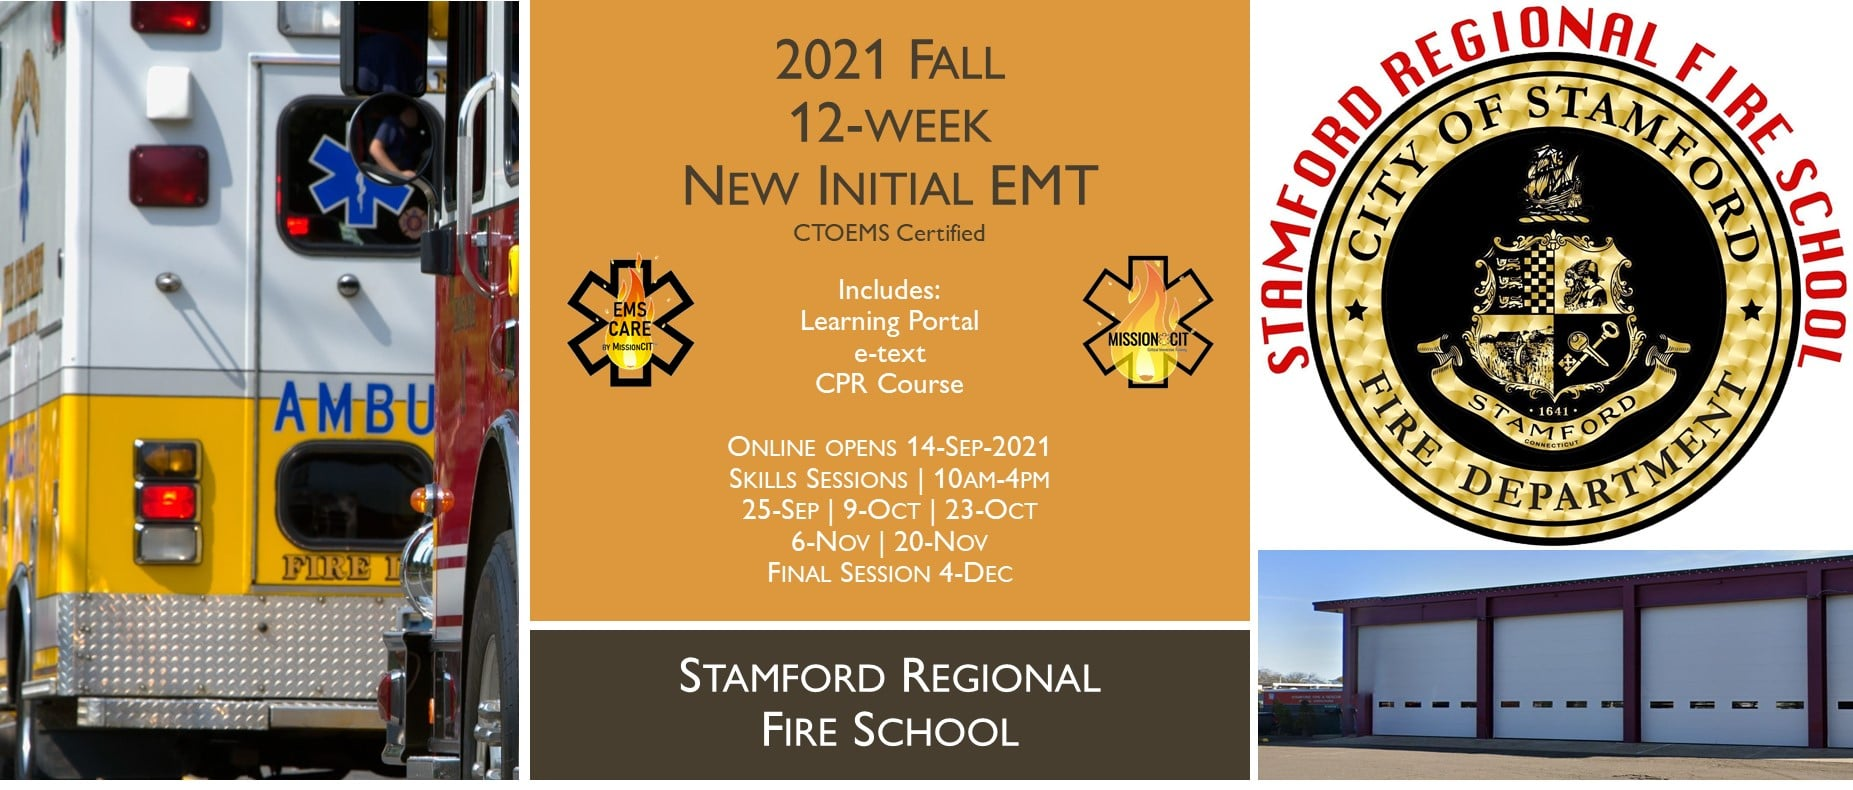 2021 Fall EMT Initial Course   Stamford Session 5   12 Week